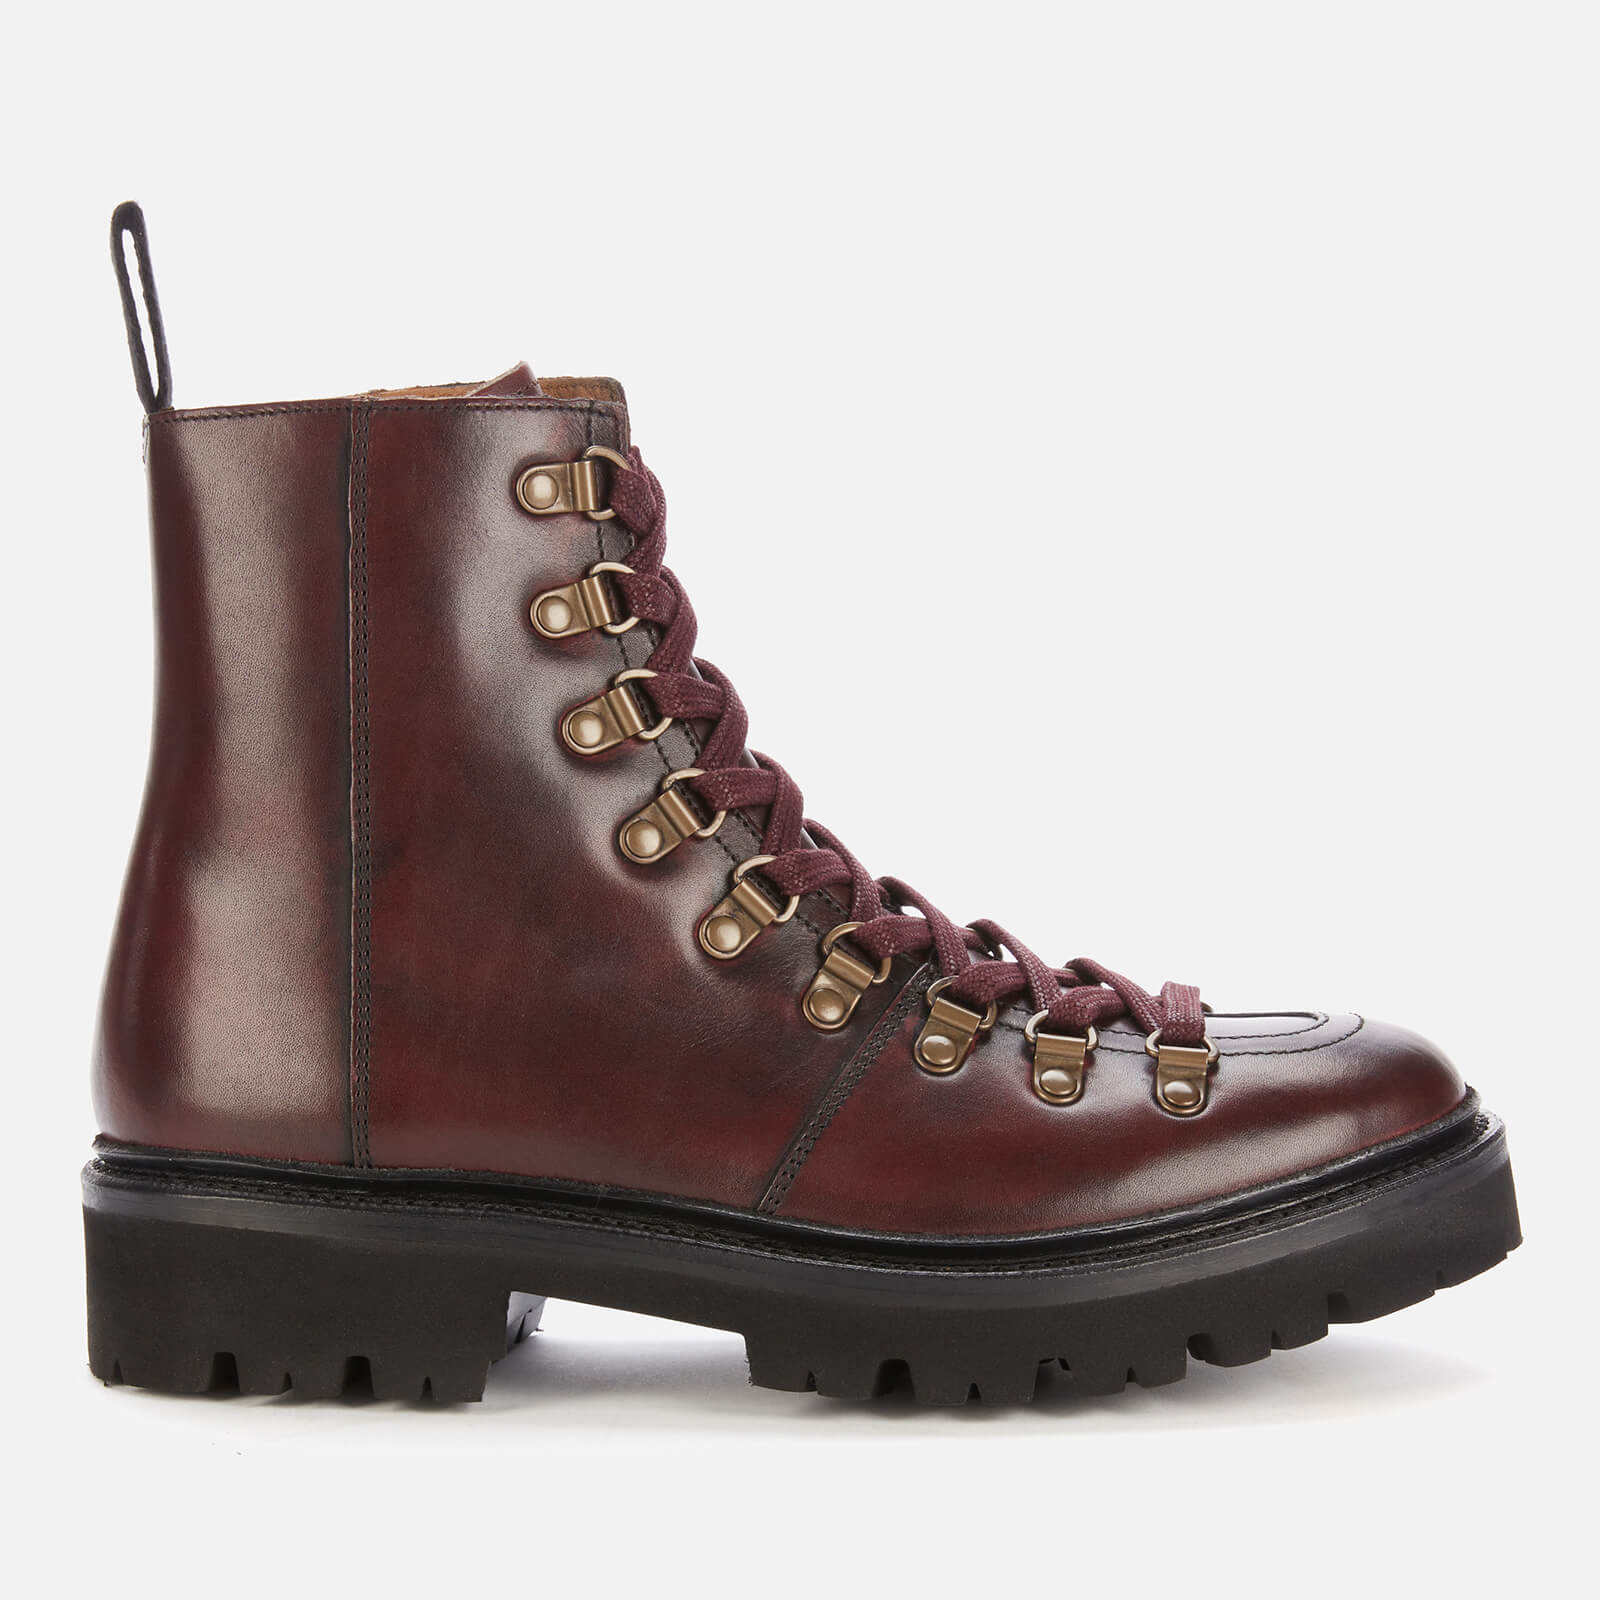 Grenson Women's Exclusive To Coggles Nanette Leather Hiking Style Boots - Burgundy - Uk  3